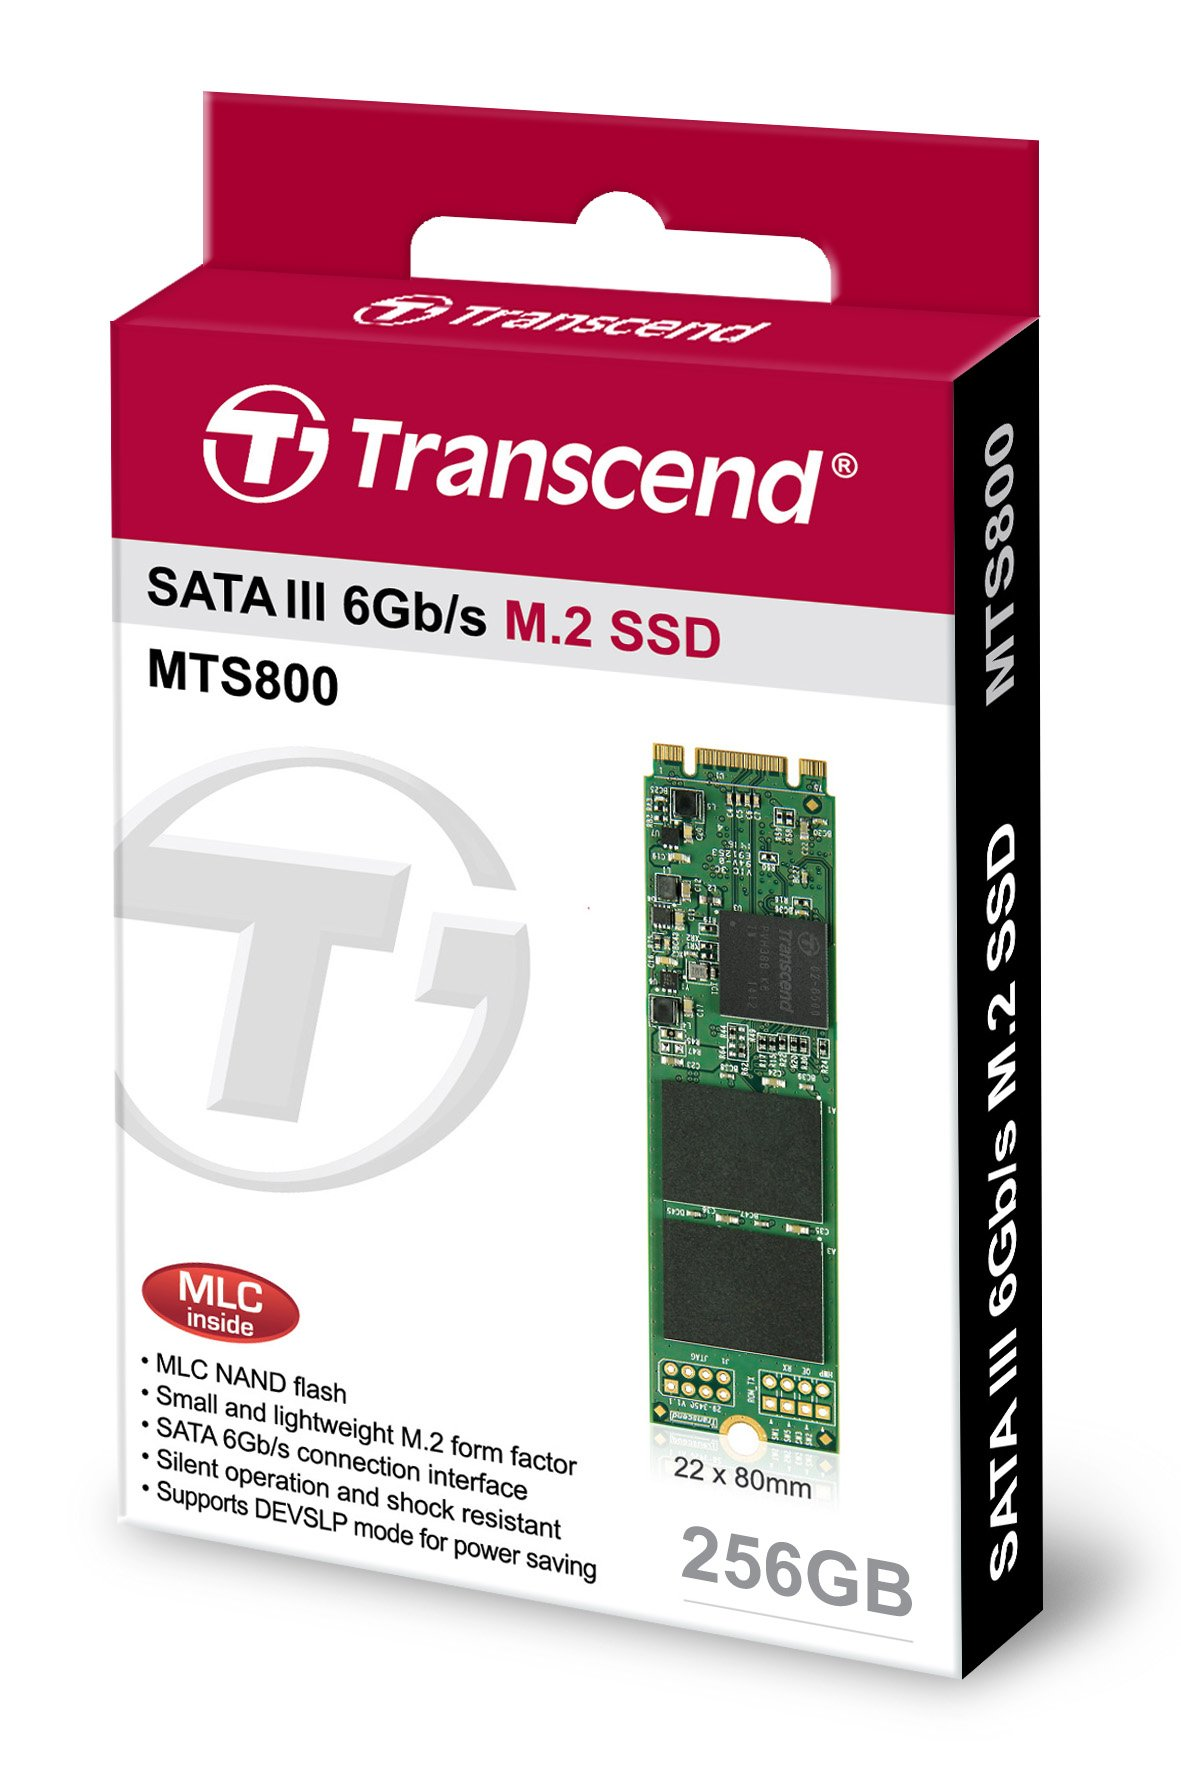 Transcend 256GB SATA III 6Gb/s MTS800 80 mm M.2 Solid State Drive (TS256GMTS800S) by Transcend